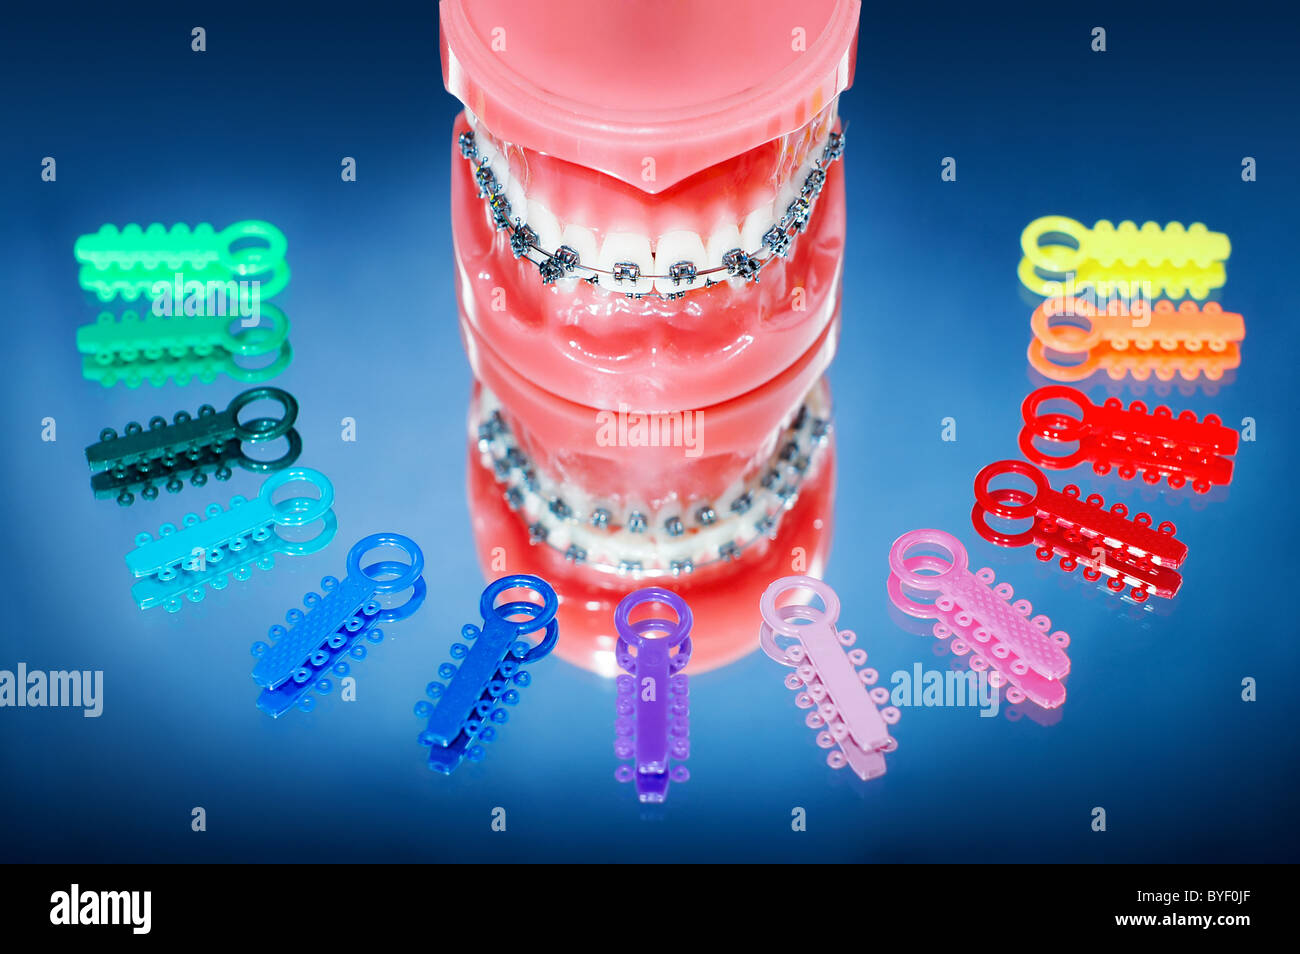 Dentures with braces surrounded by multicolored ligature ties Stock ...